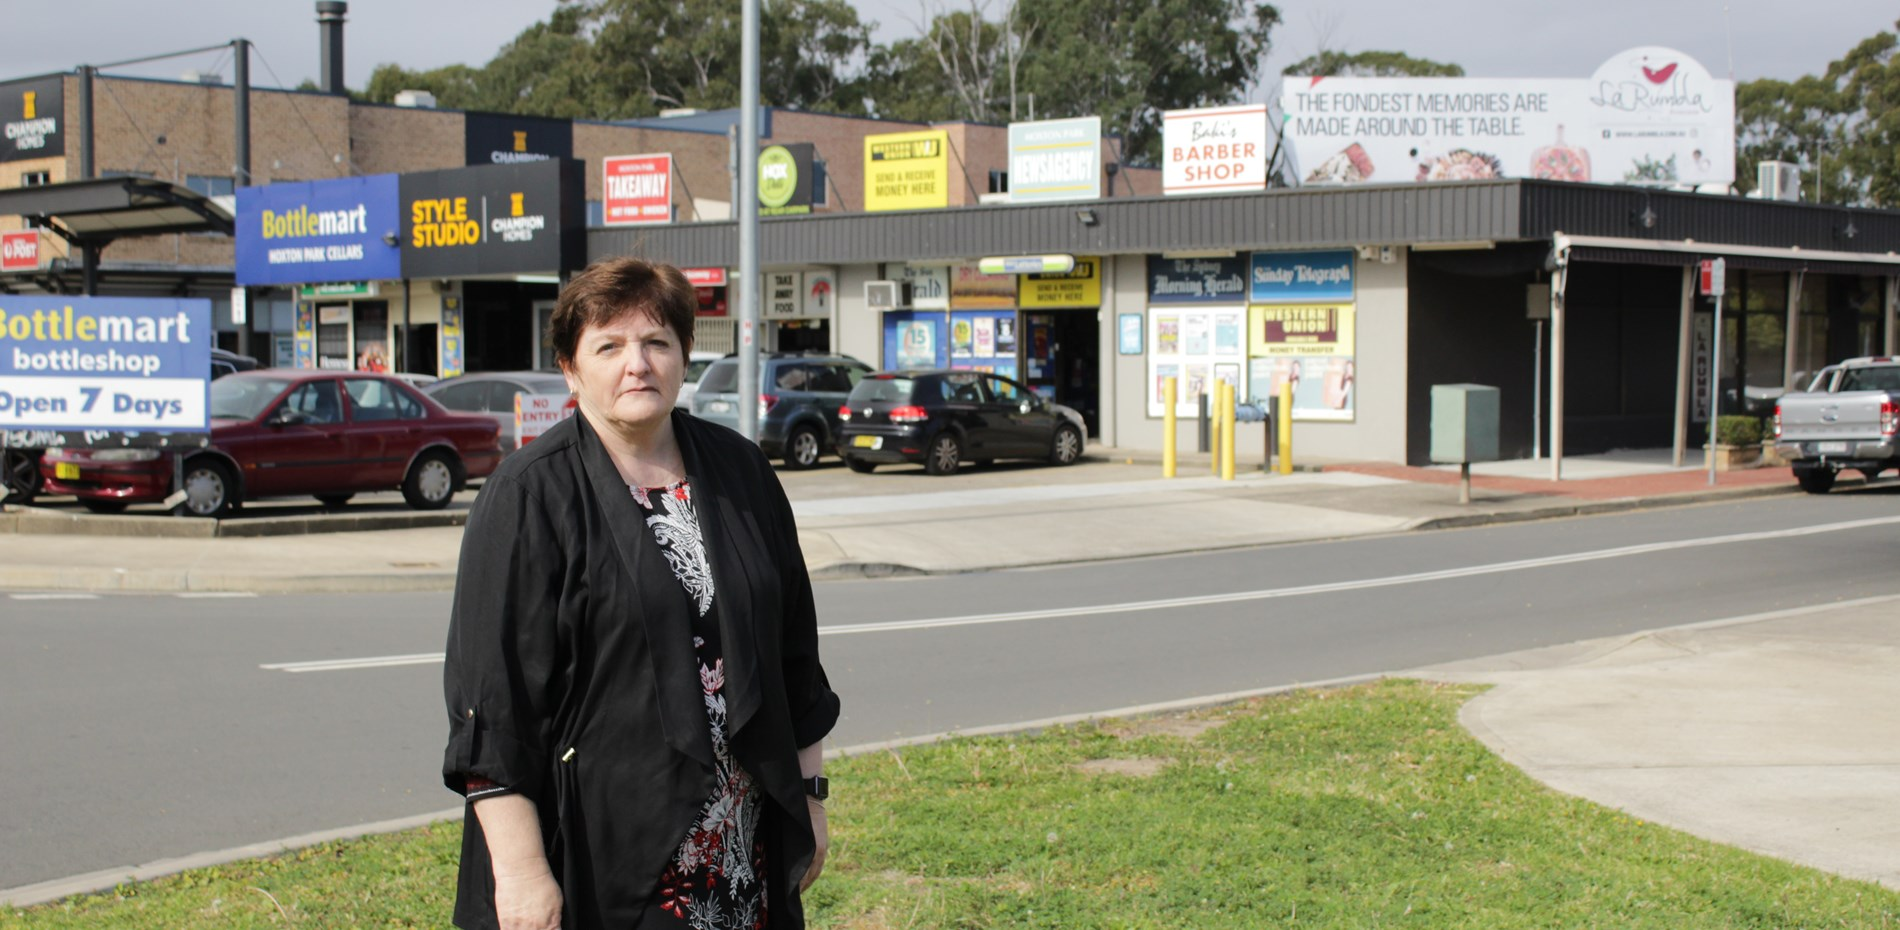 HOXTON PARK BUSINESSES IGNORED BY NSW GOVERNMENT Main Image